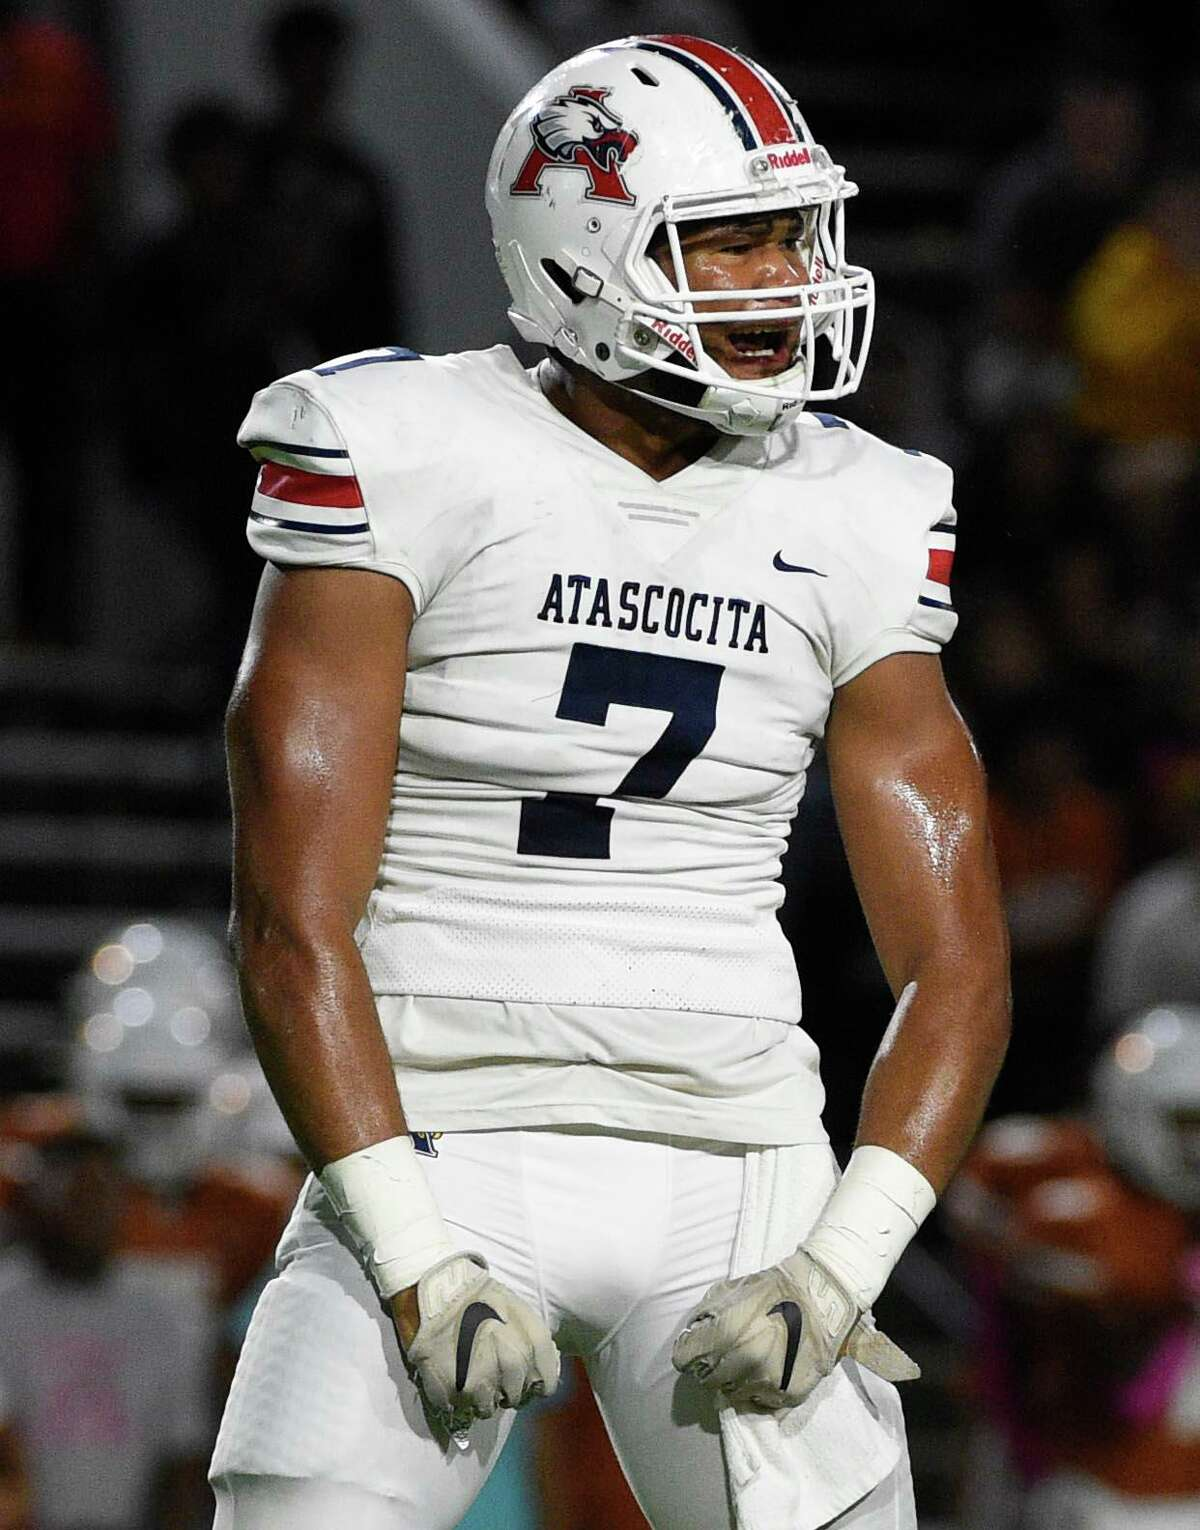 Atascocita defensive lineman Asyrus Simon celebrates his sack of Dobie quarterback Cameron Gray during the first half of a high school football game, Friday, Oct. 18, 2019, in Pasadena, TX.